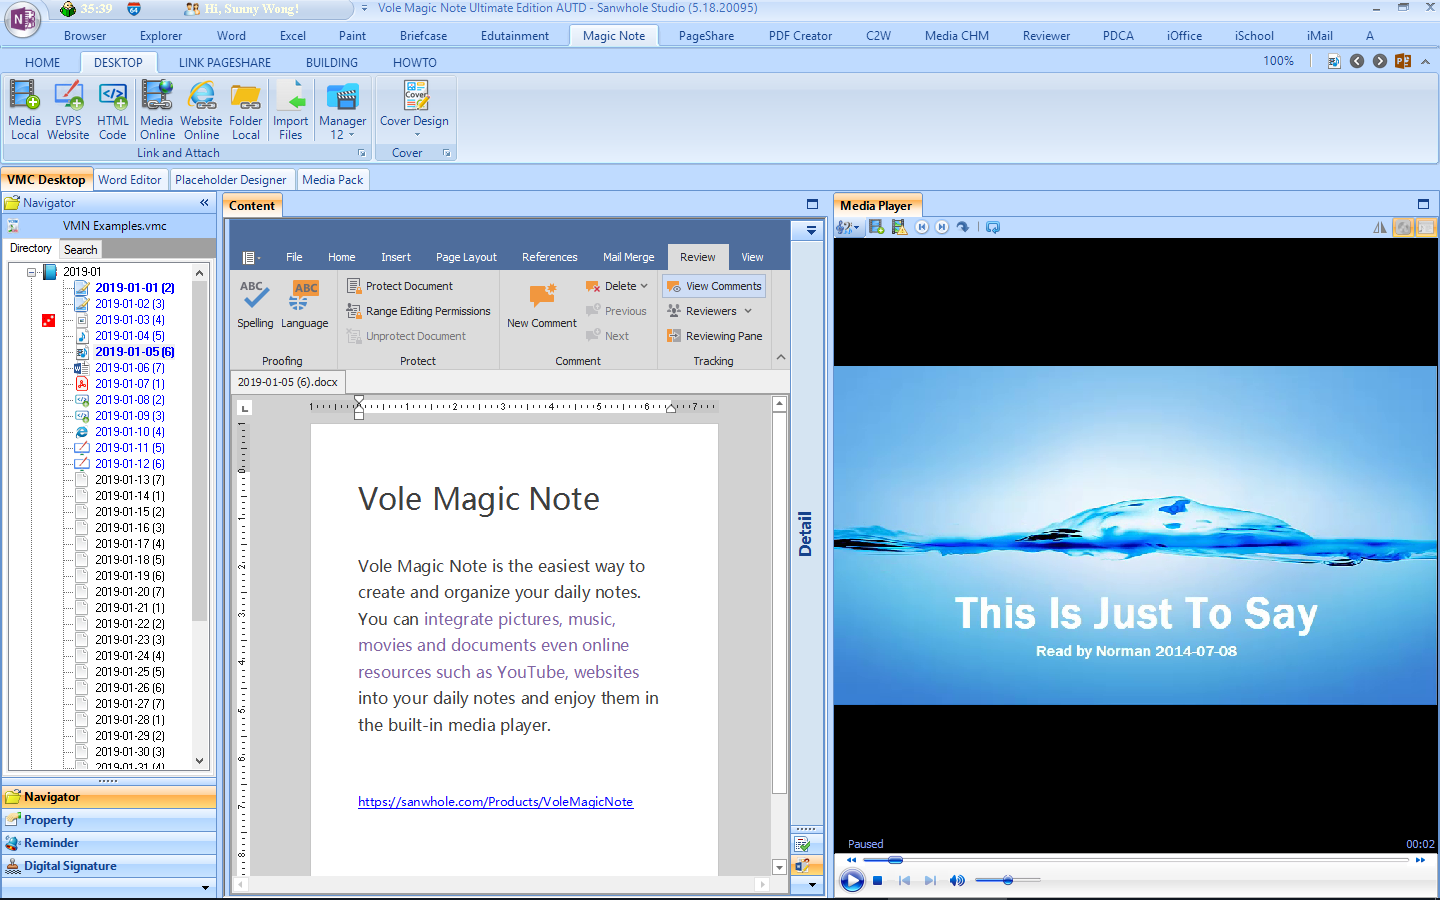 Writing and Journaling Software, Vole Magic Note Ultimate Edition Screenshot